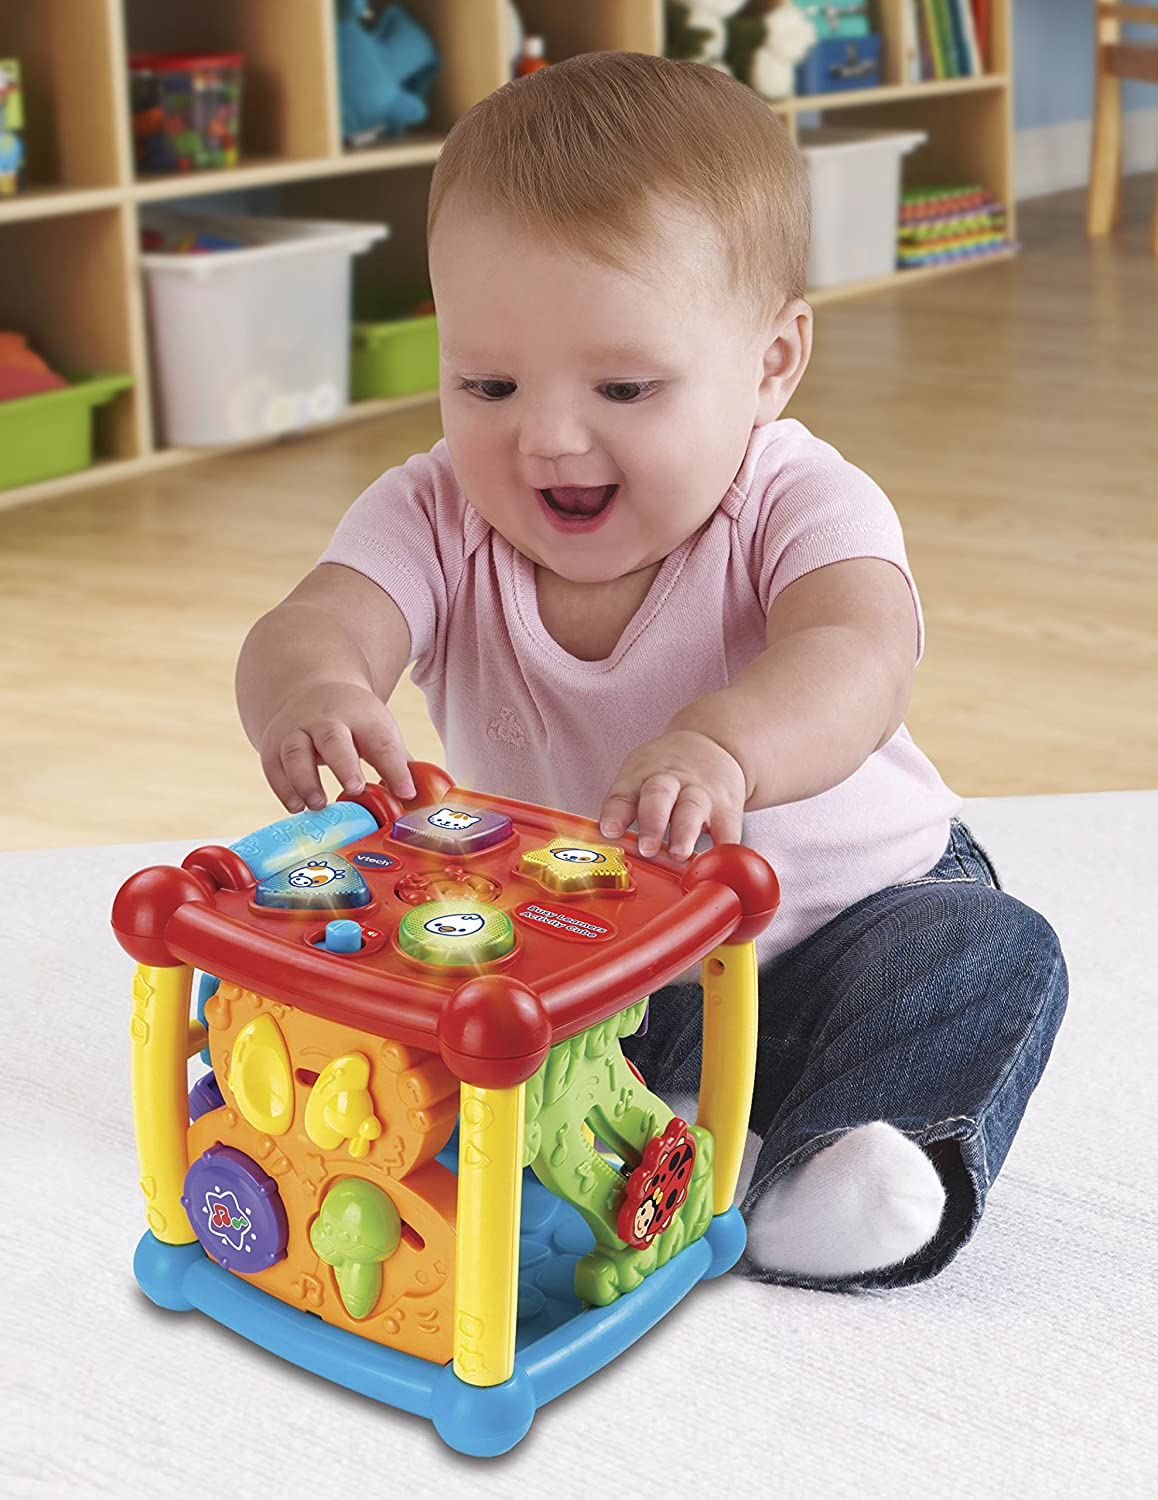 Used Toys For Toddlers : Vtech baby activity center cube kids learning toys animal